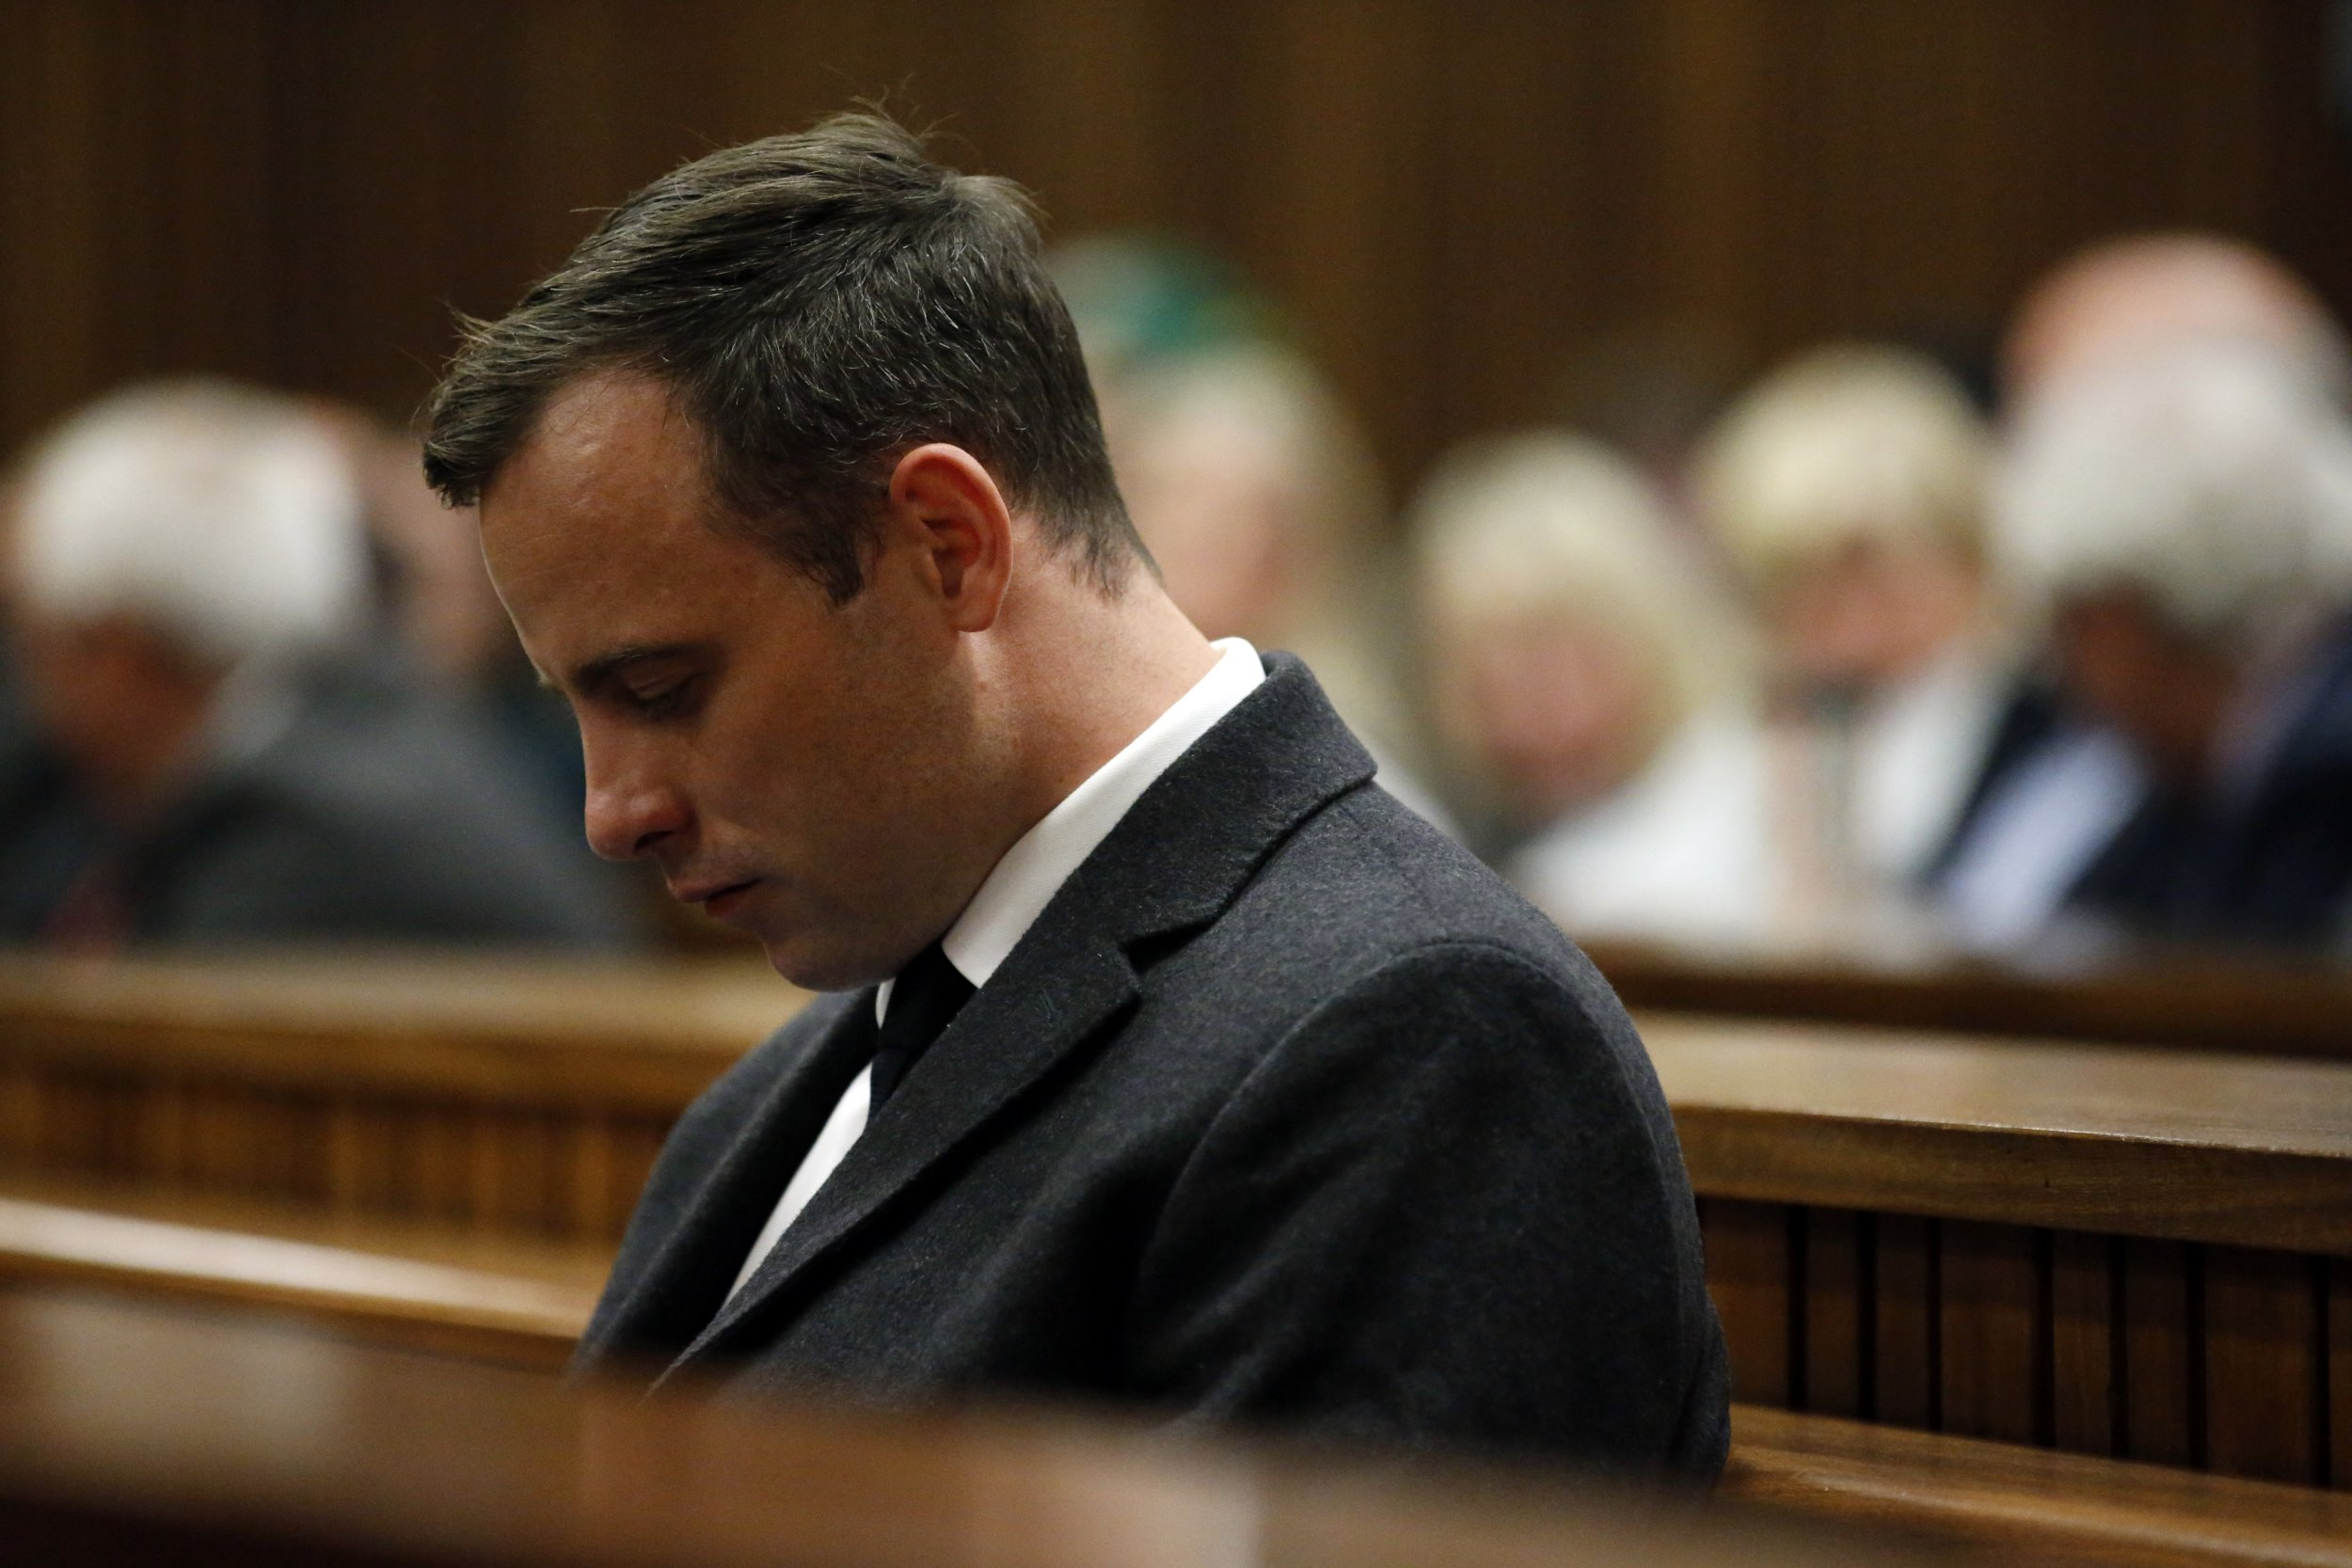 Oscar Pistorius during sentencing